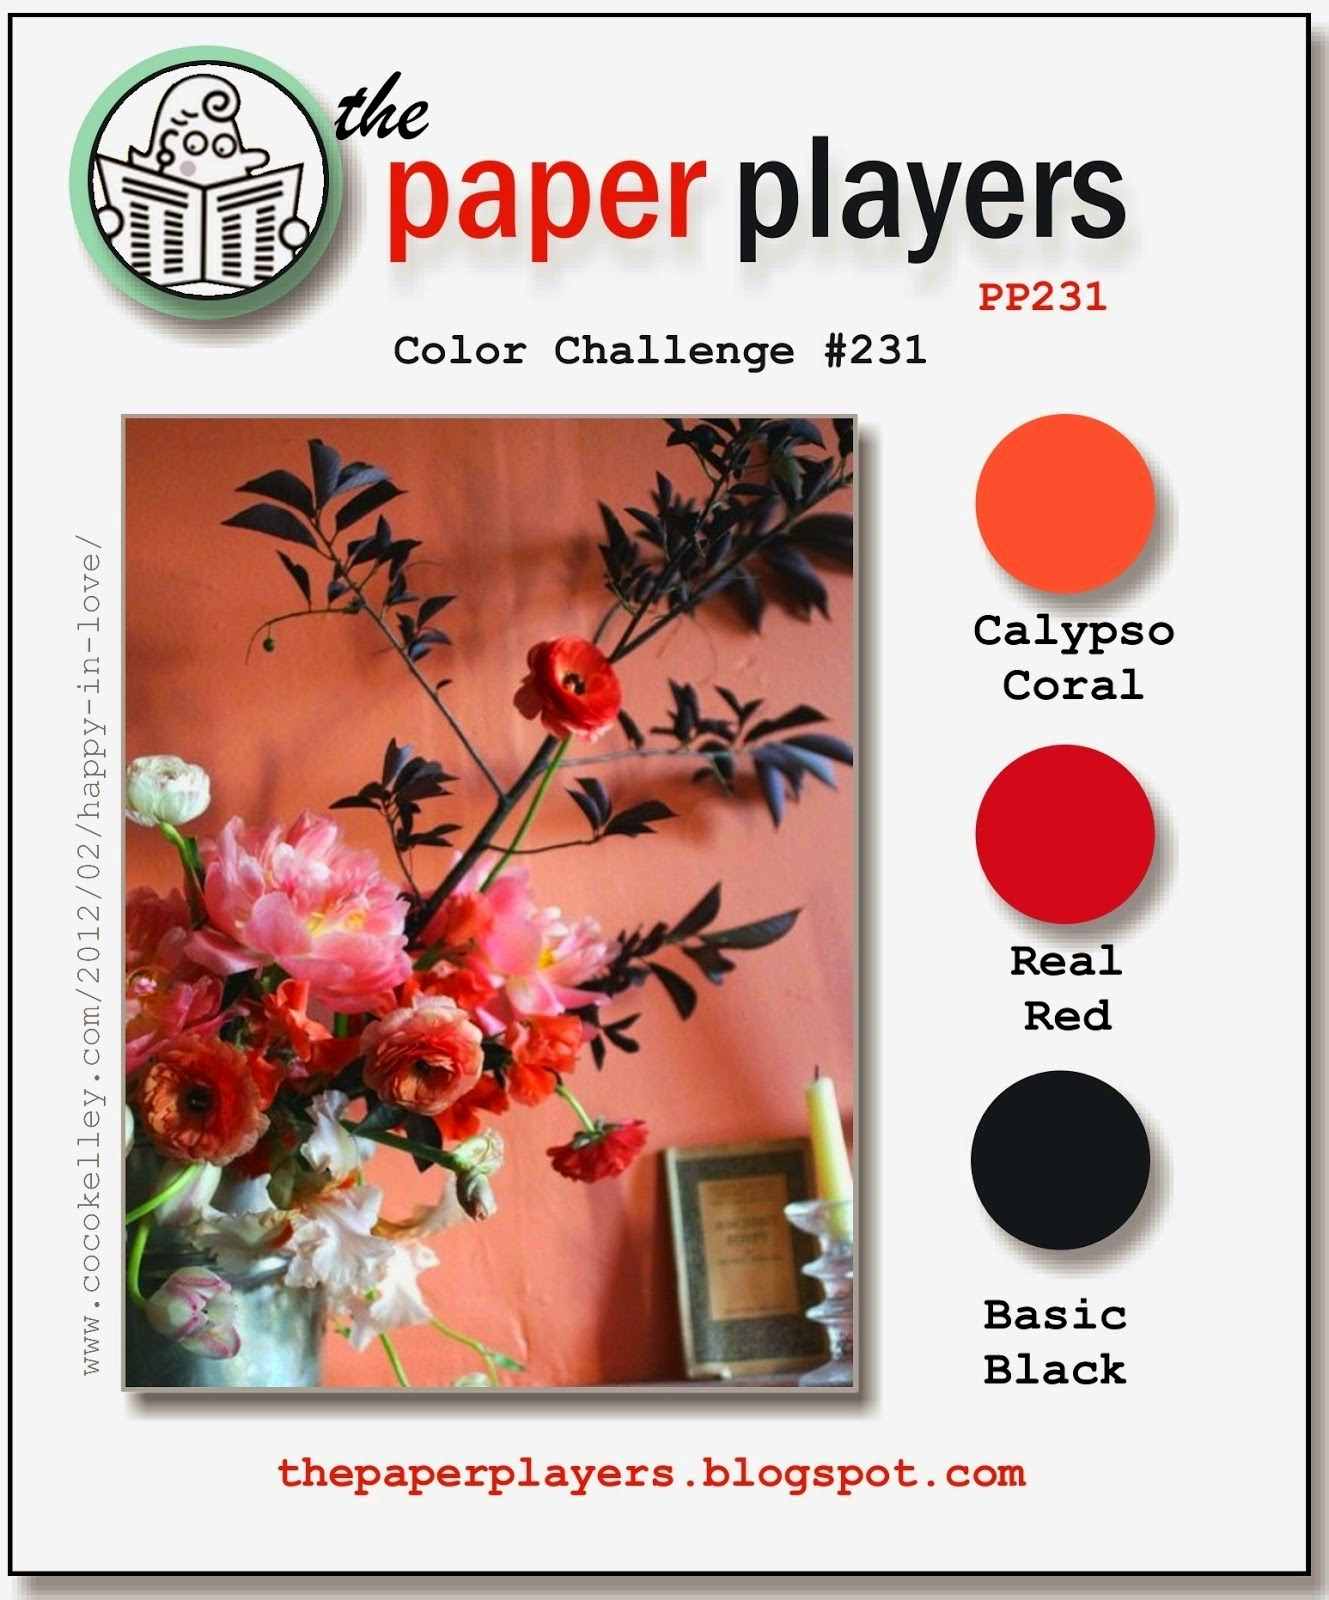 http://thepaperplayers.blogspot.ca/2015/02/pp231-color-challenge-from-nance.html